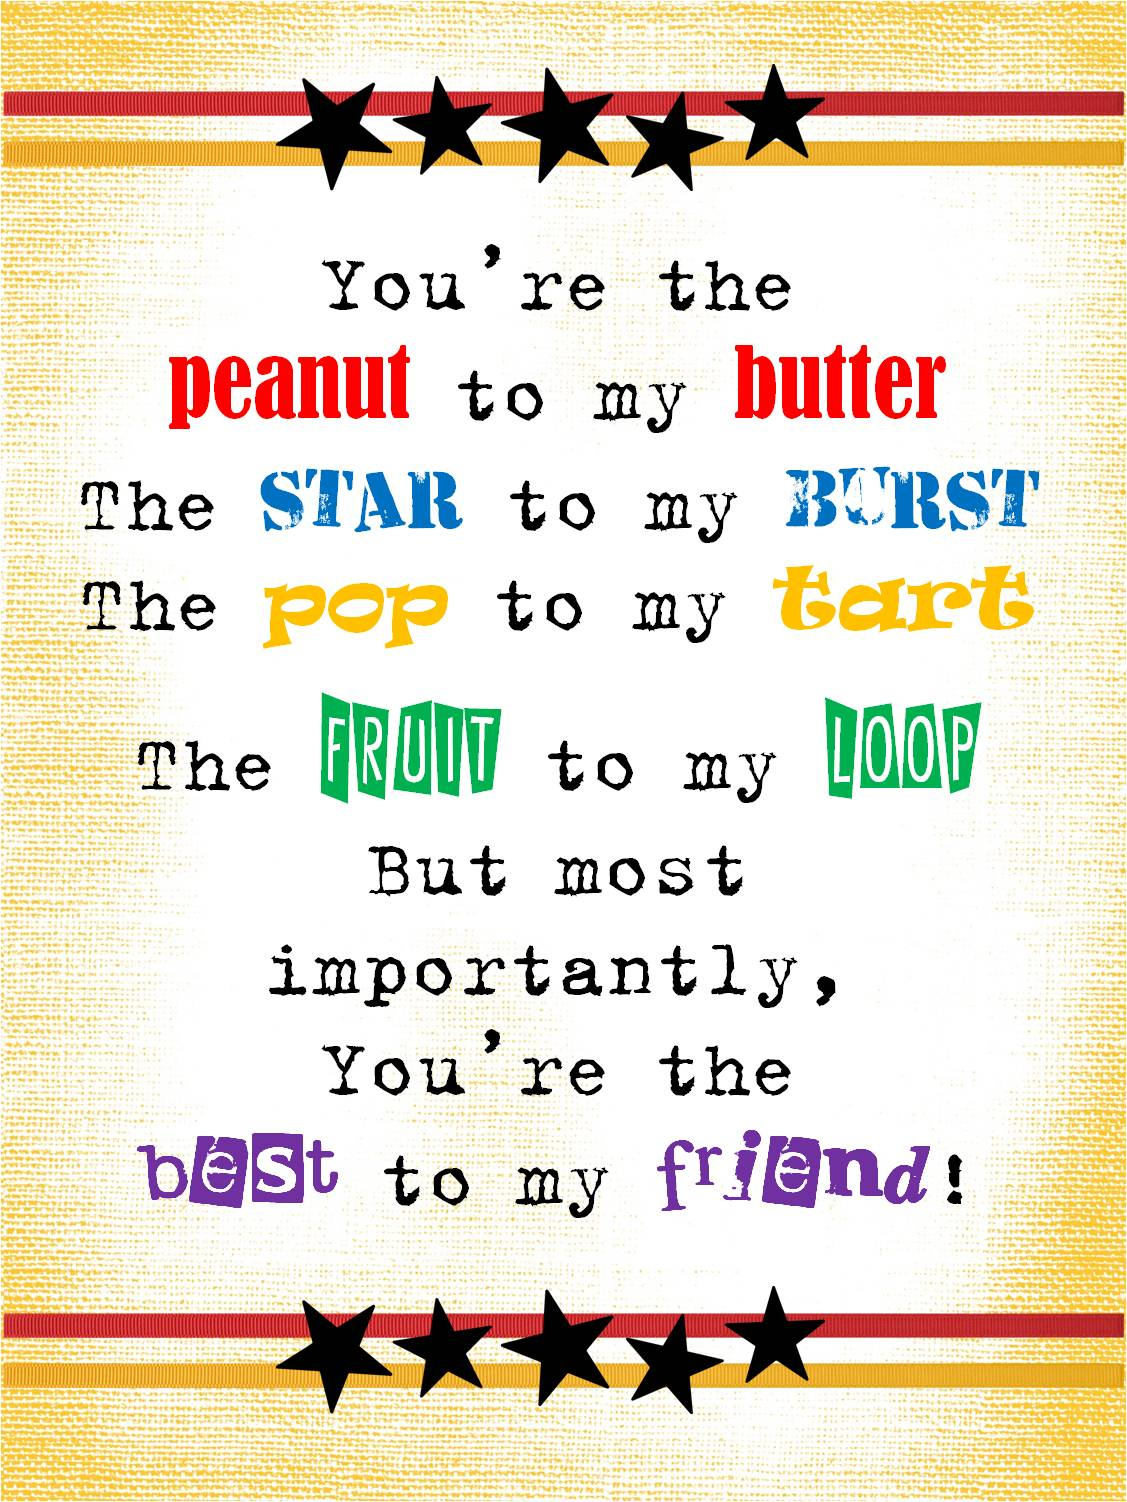 Best Friend Quotes Peanut To My Butter Peanut Butter To My Best